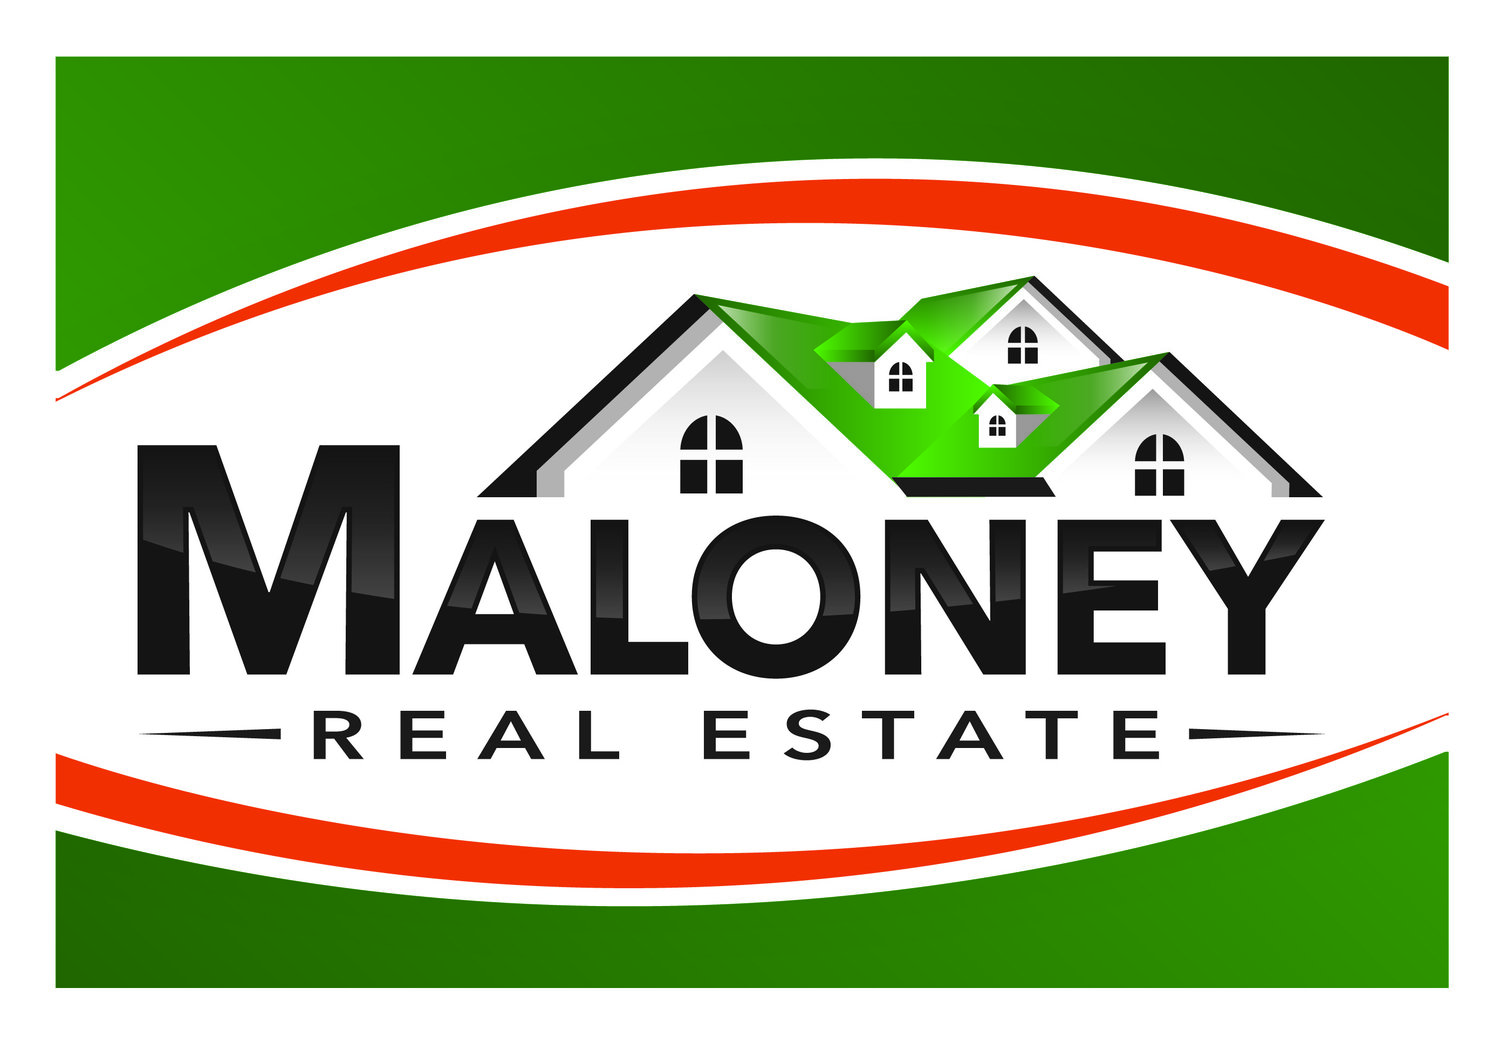 Maloney Real Estate & Property Management